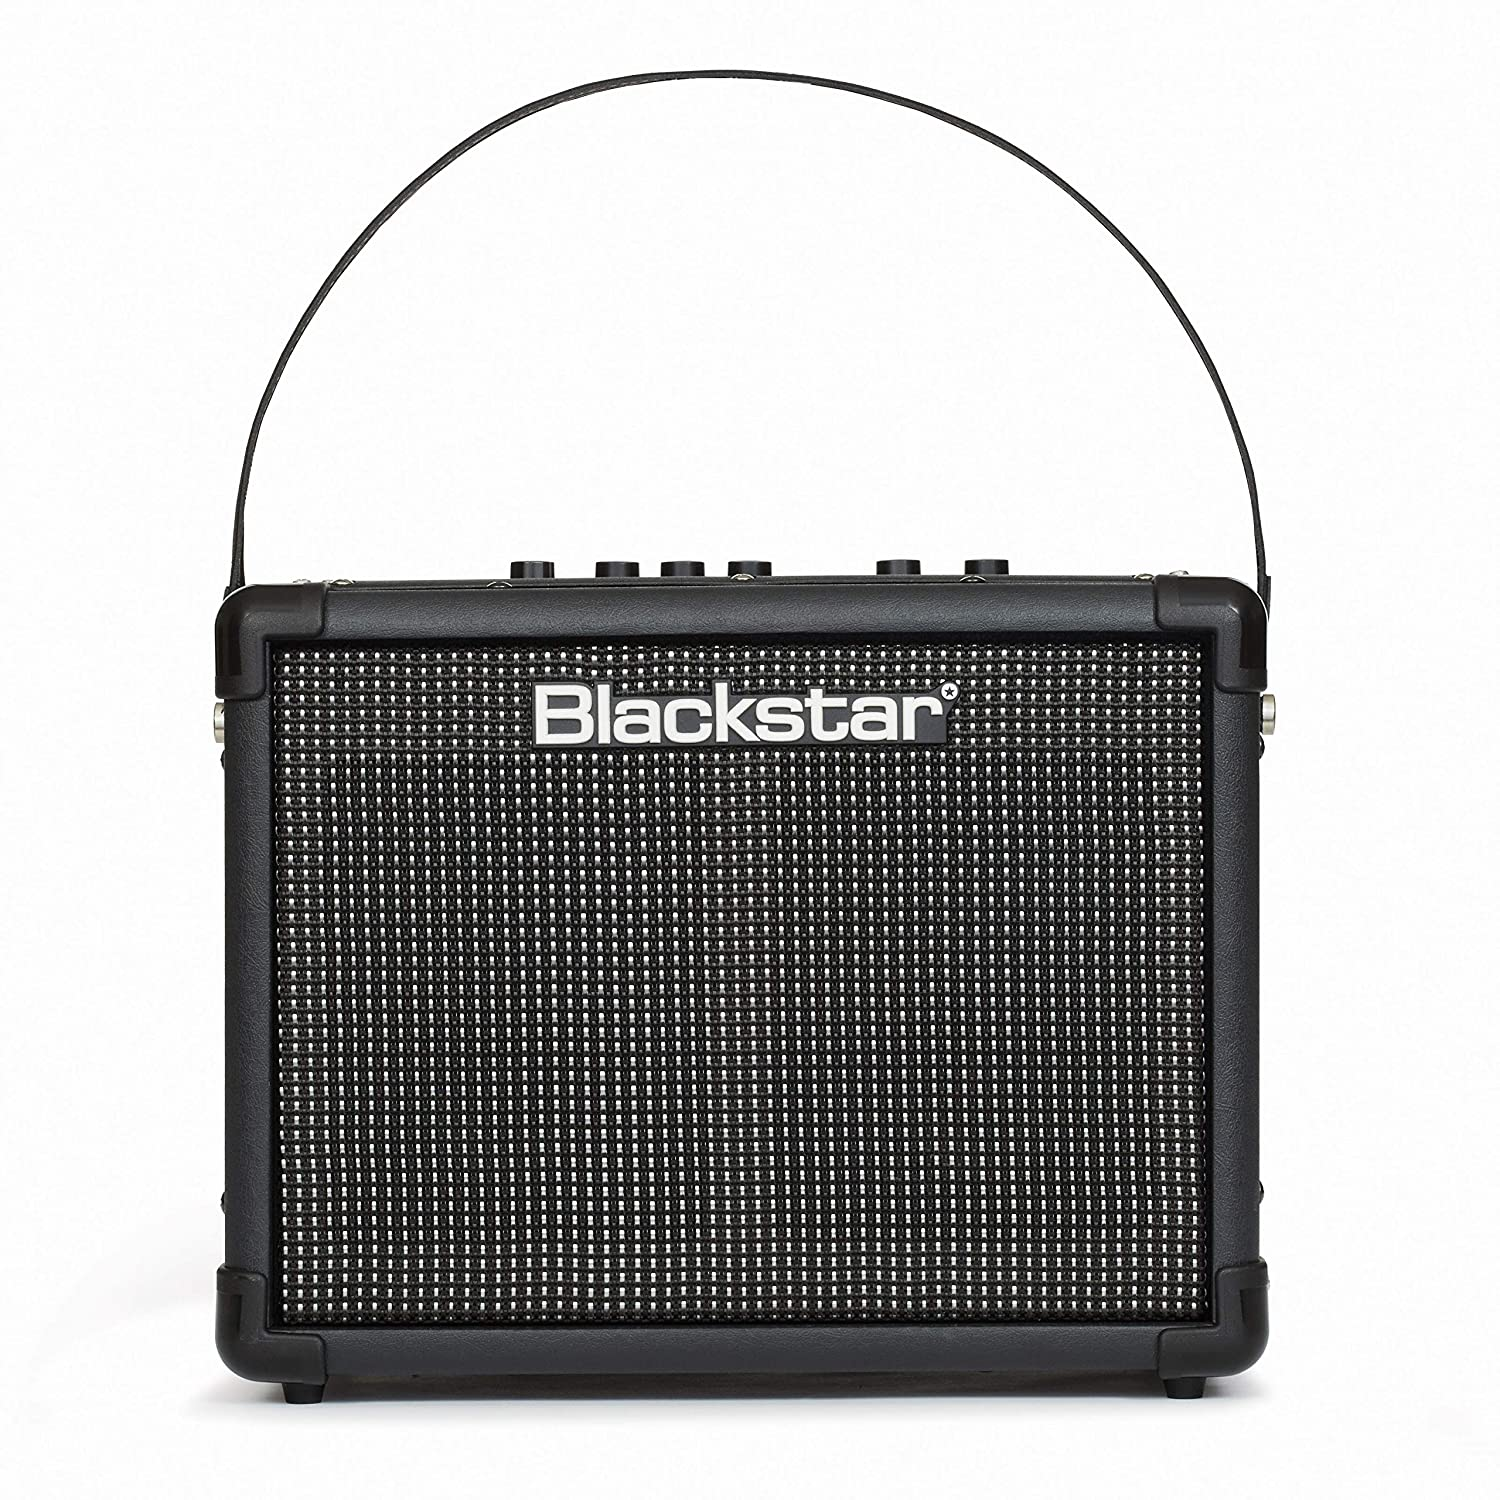 Blackstar 10W Digital Stereo Combo: Amazon.in: Musical Instruments